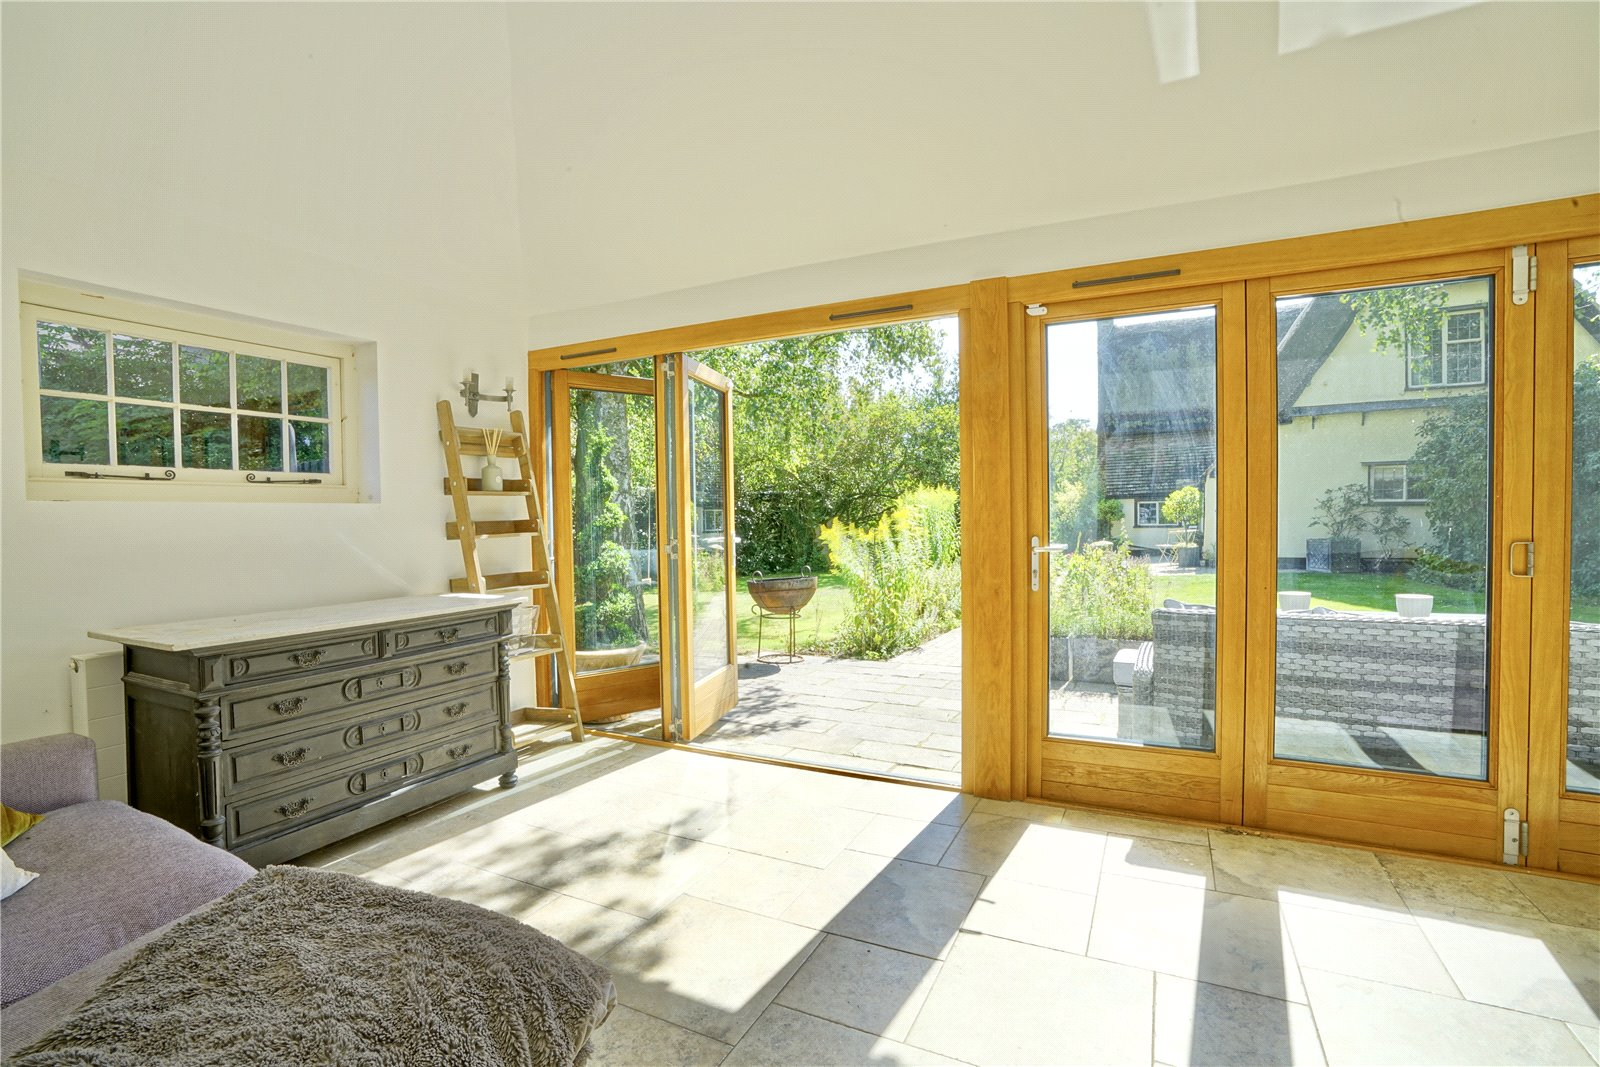 3 bed house for sale in Great Staughton  - Property Image 12